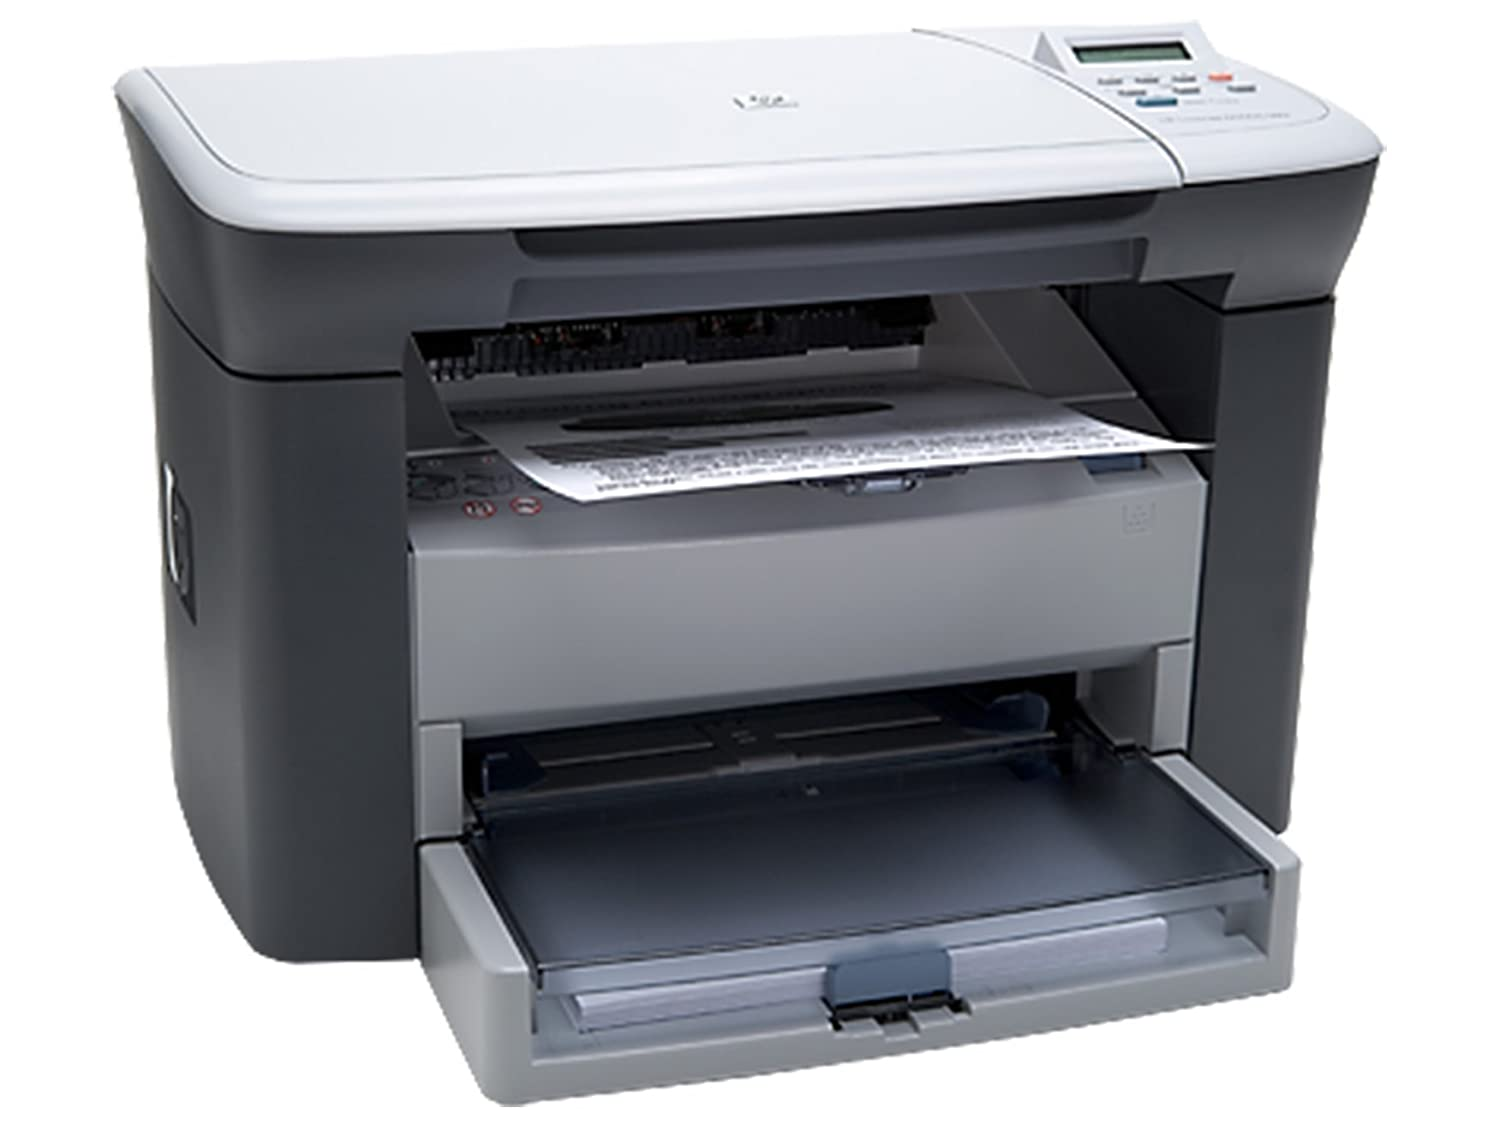 Shop Staples for HP Printer Deals. Save big on our wide selection of HP Printers on Sale and get fast & free shipping on select orders.